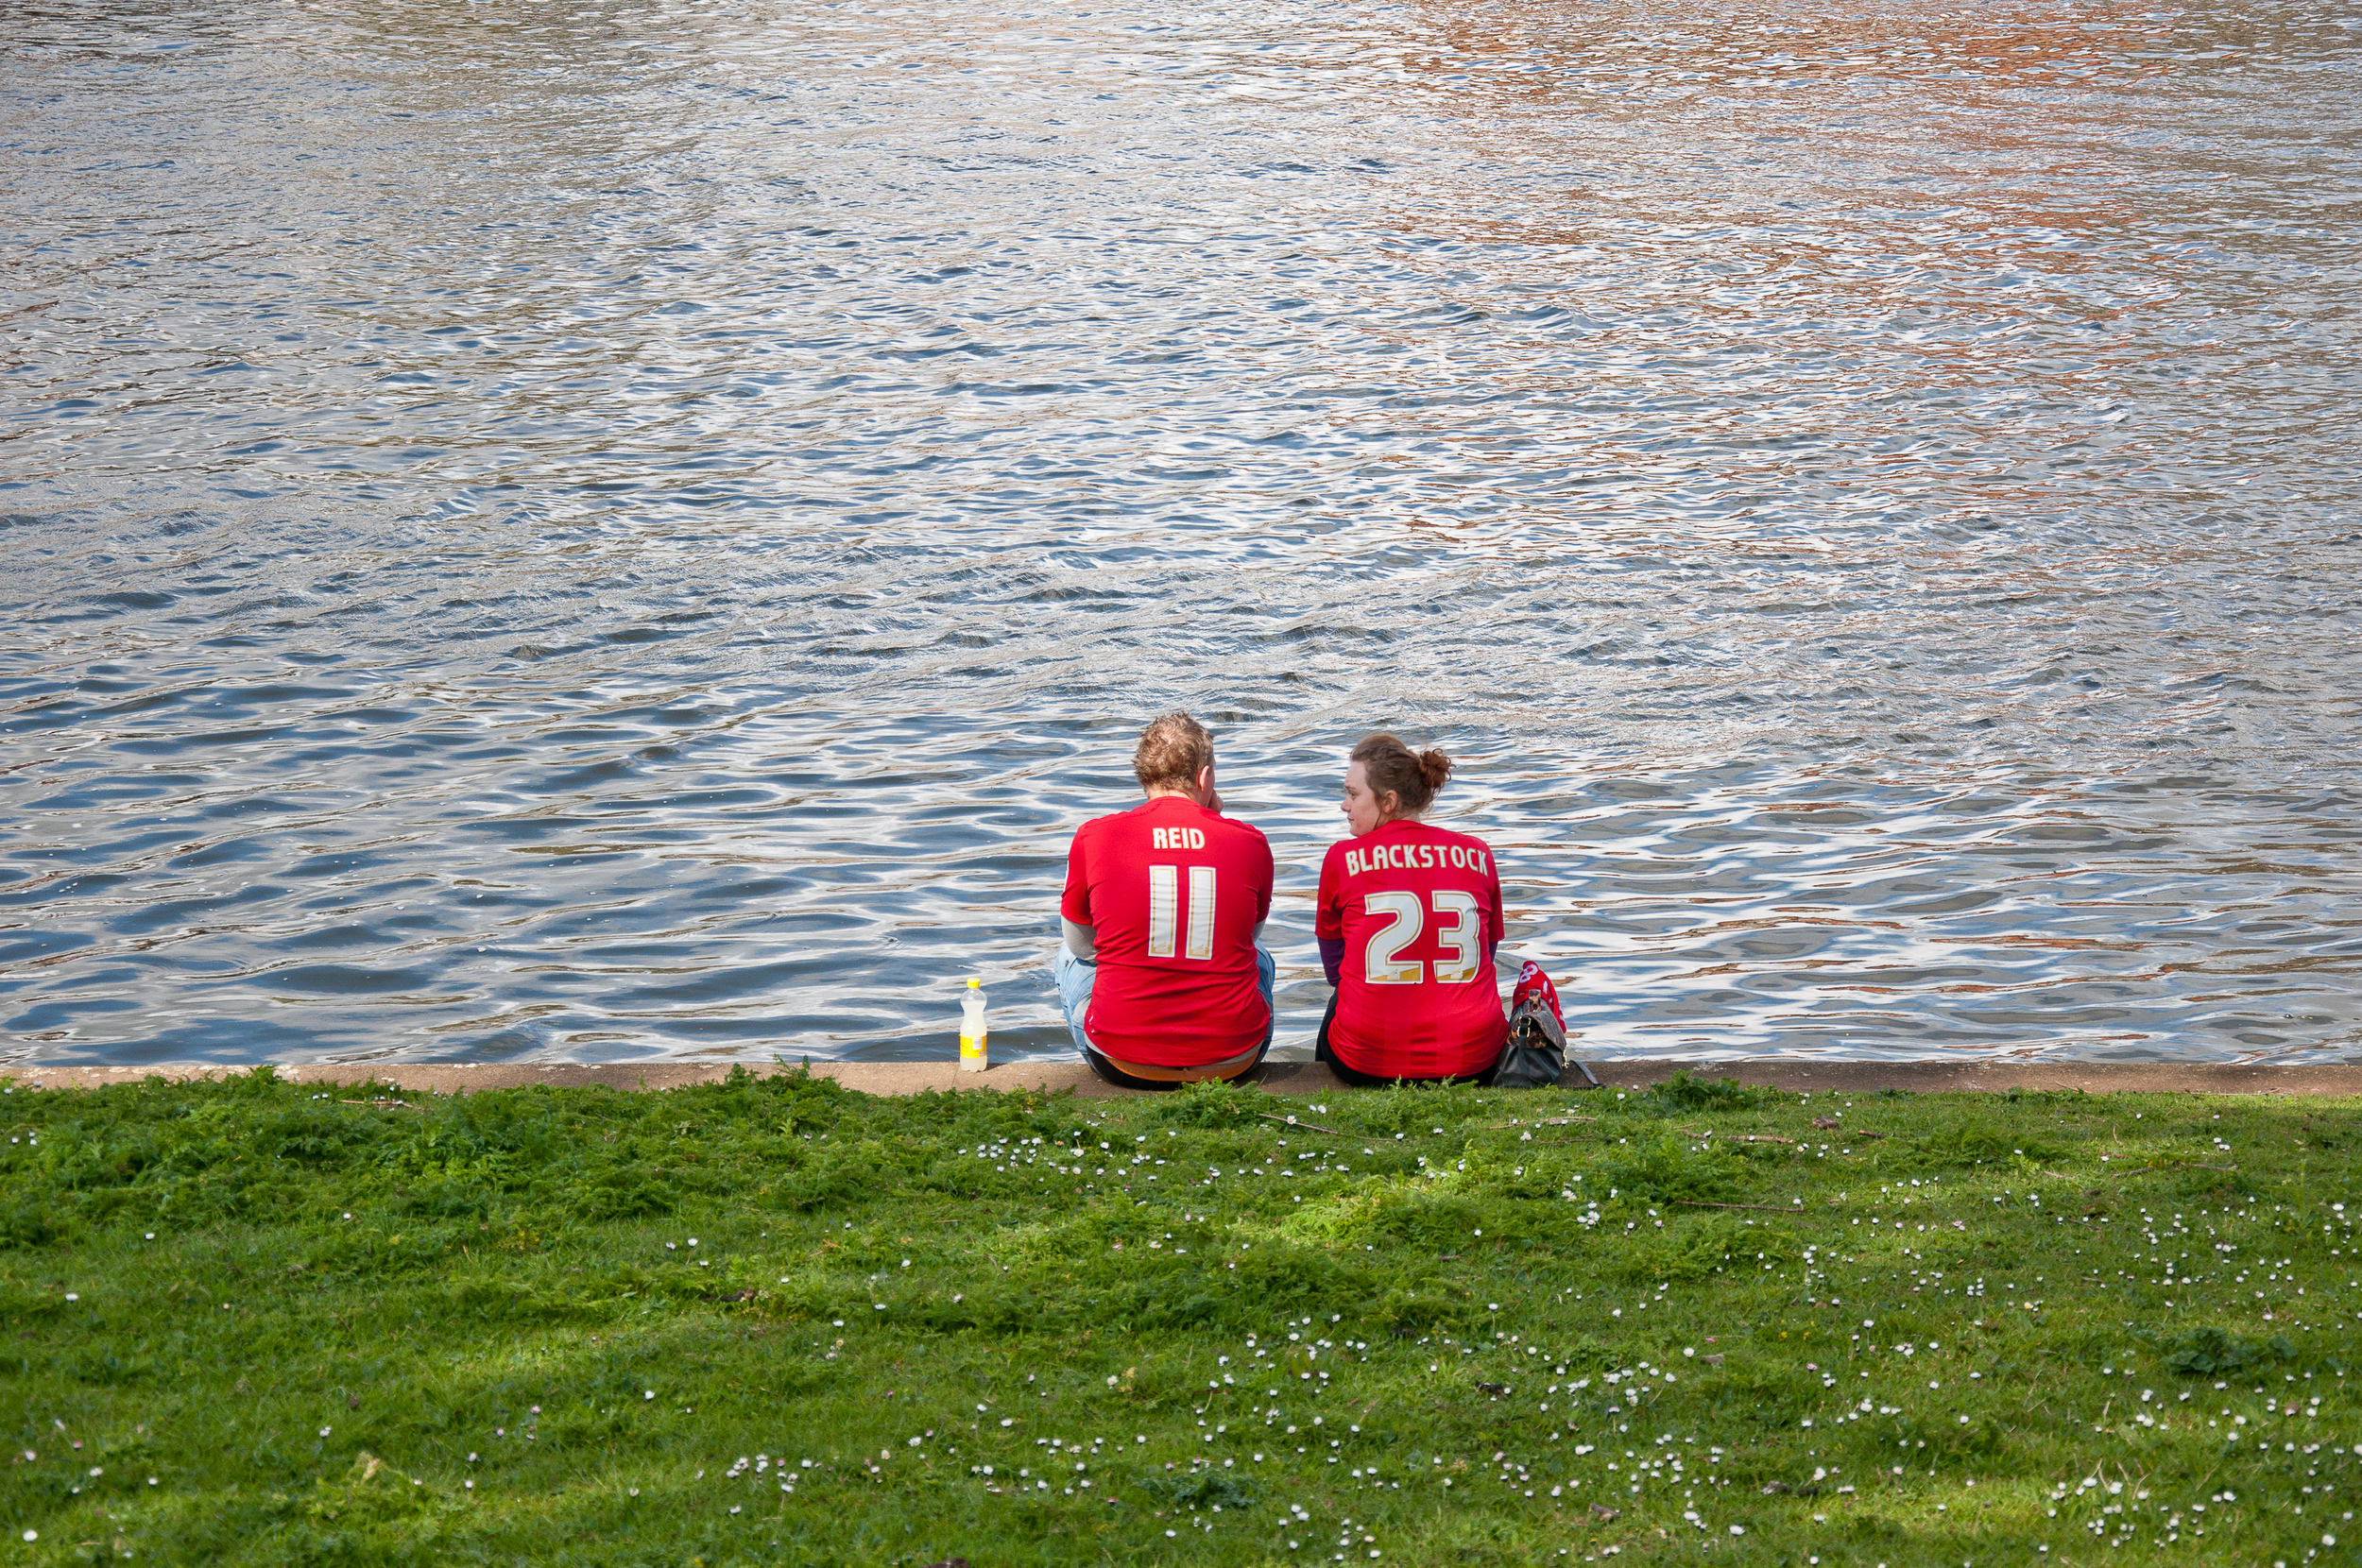 A couple sitting on the bank of the river Trent waiting for kick off against Leicester City during the season of 2012.